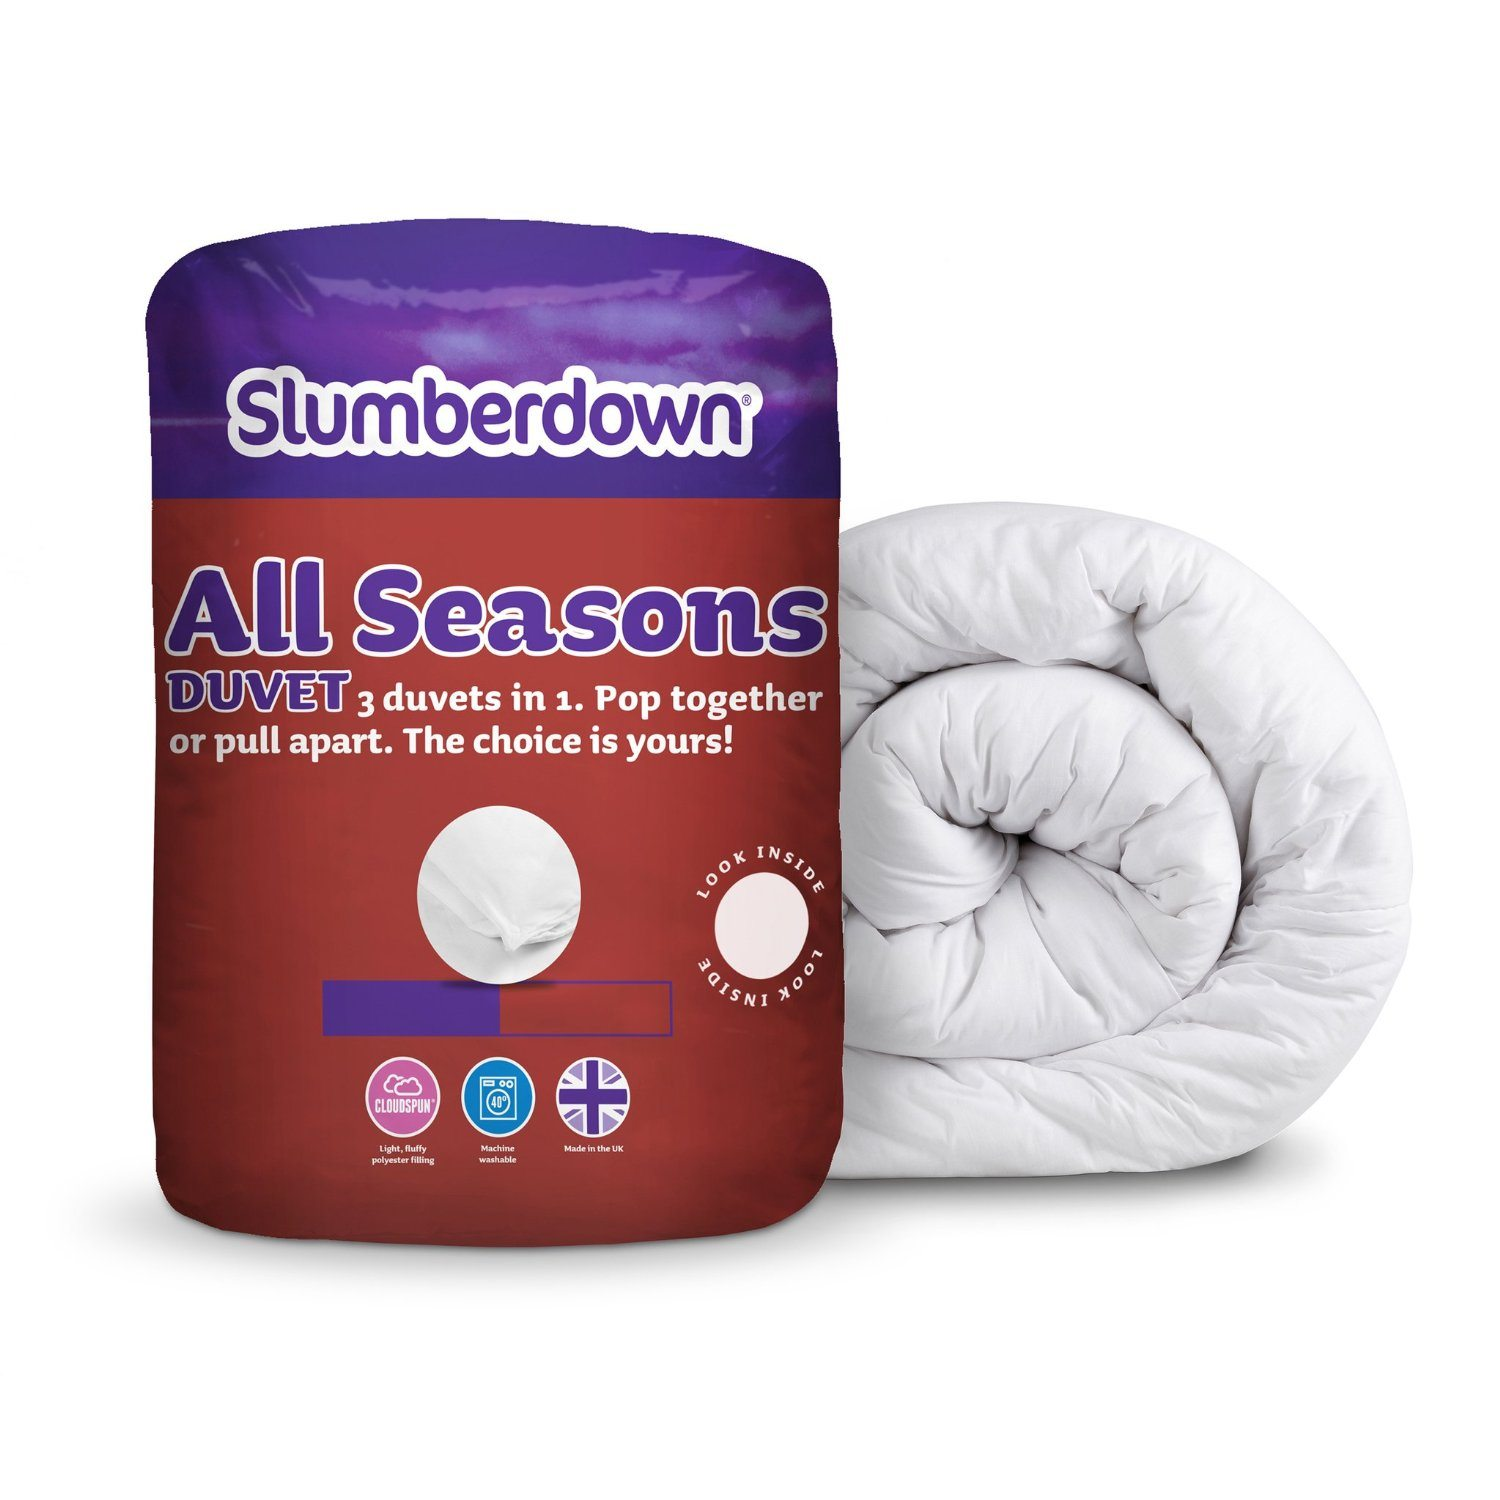 Slumberdown All Seasons 15 Tog Combi Duvet- King Size Bed